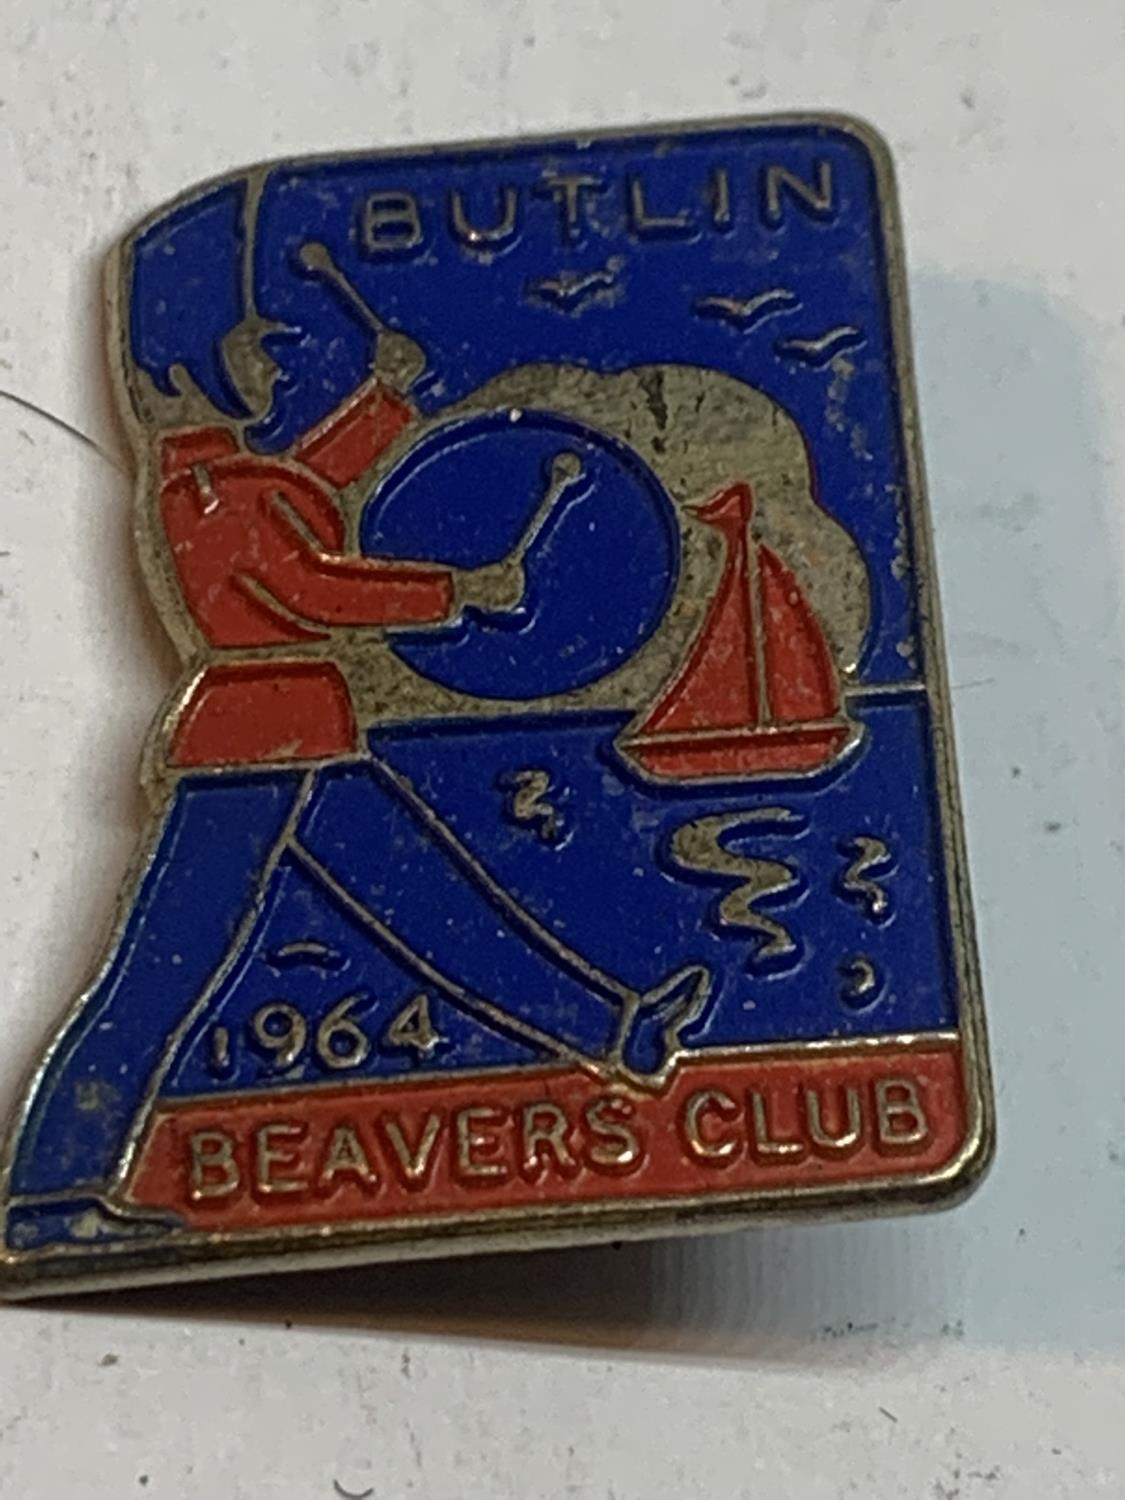 TWO RARE BUTLINS BADGES TO INCLUDE AN IRELAND 1960 AND A 1964 BEAVERS CLUB - Image 2 of 3